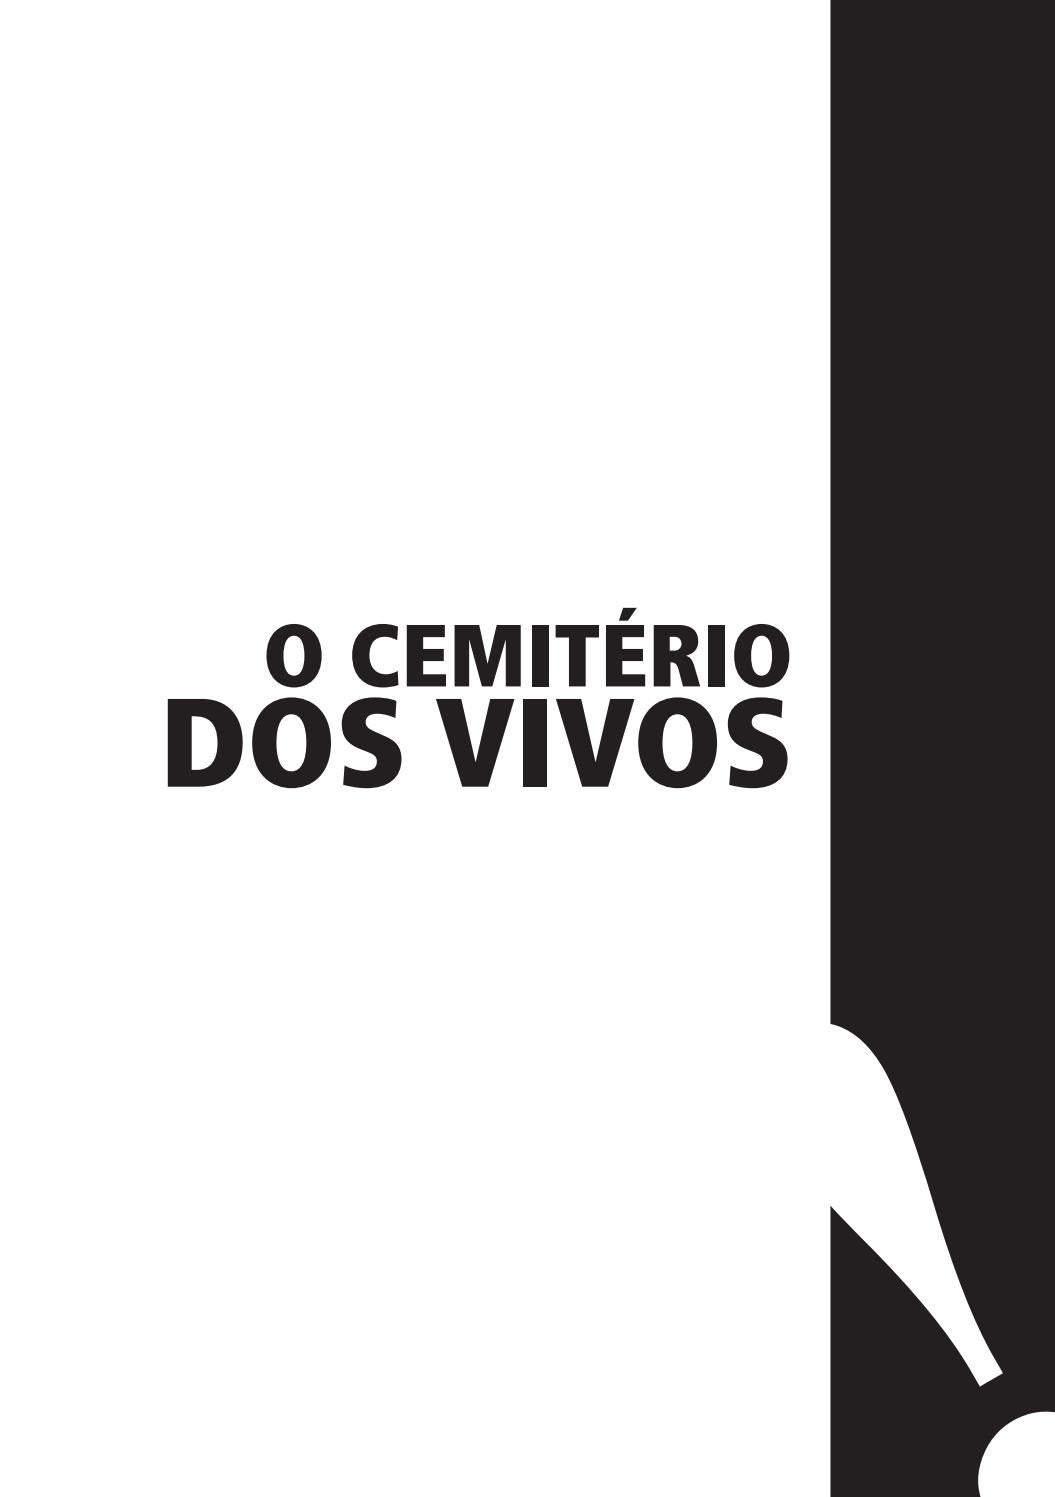 Livros By Curso Luther King Issuu